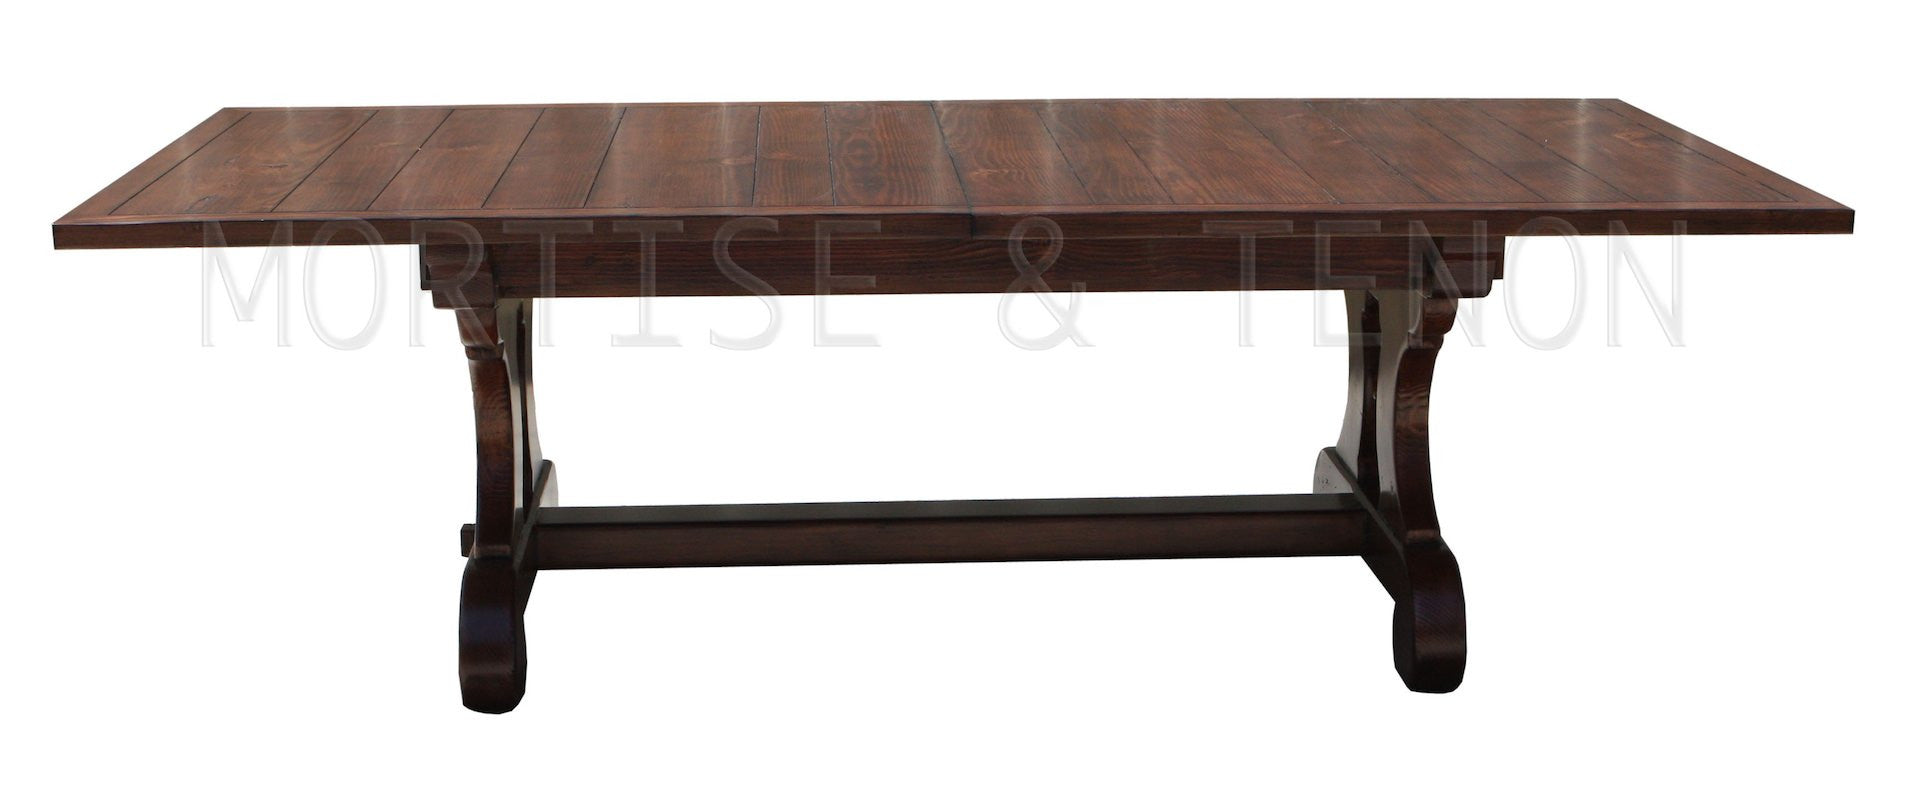 Charming Lourdes Plank Top Trestle Dining Table In Reclaimed Wood ...